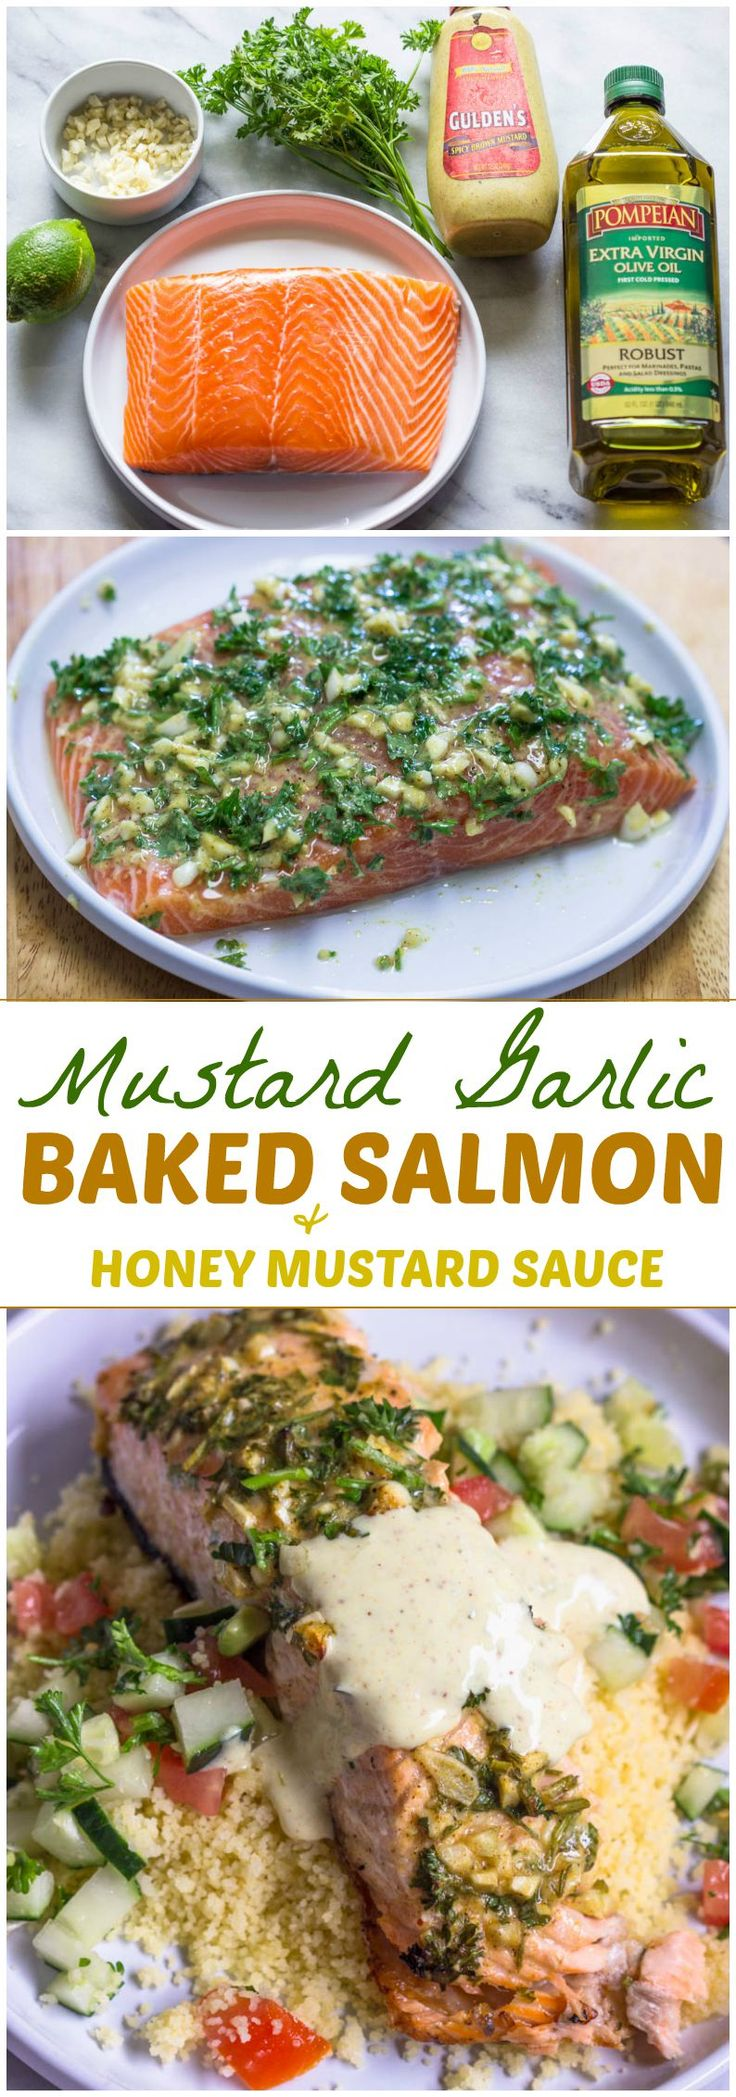 Baked Mustard Garlic Salmon with Honey Mustard Sauce | Gimme Delicious